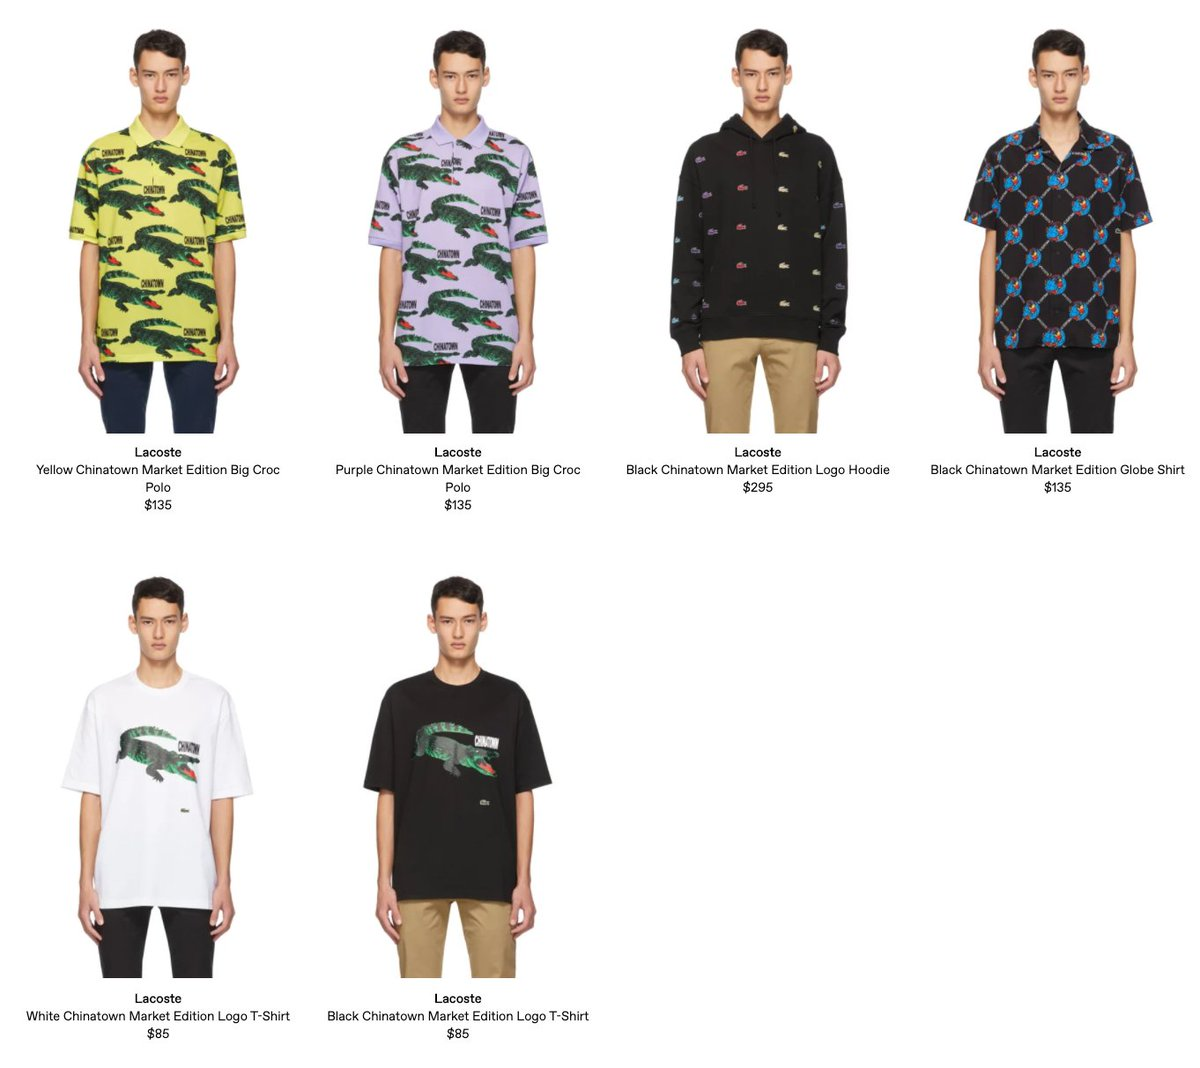 Sole Links On Twitter Ad Live Via Ssense Lacoste X Chinatown Market Apparel Https T Co J5onxxher2